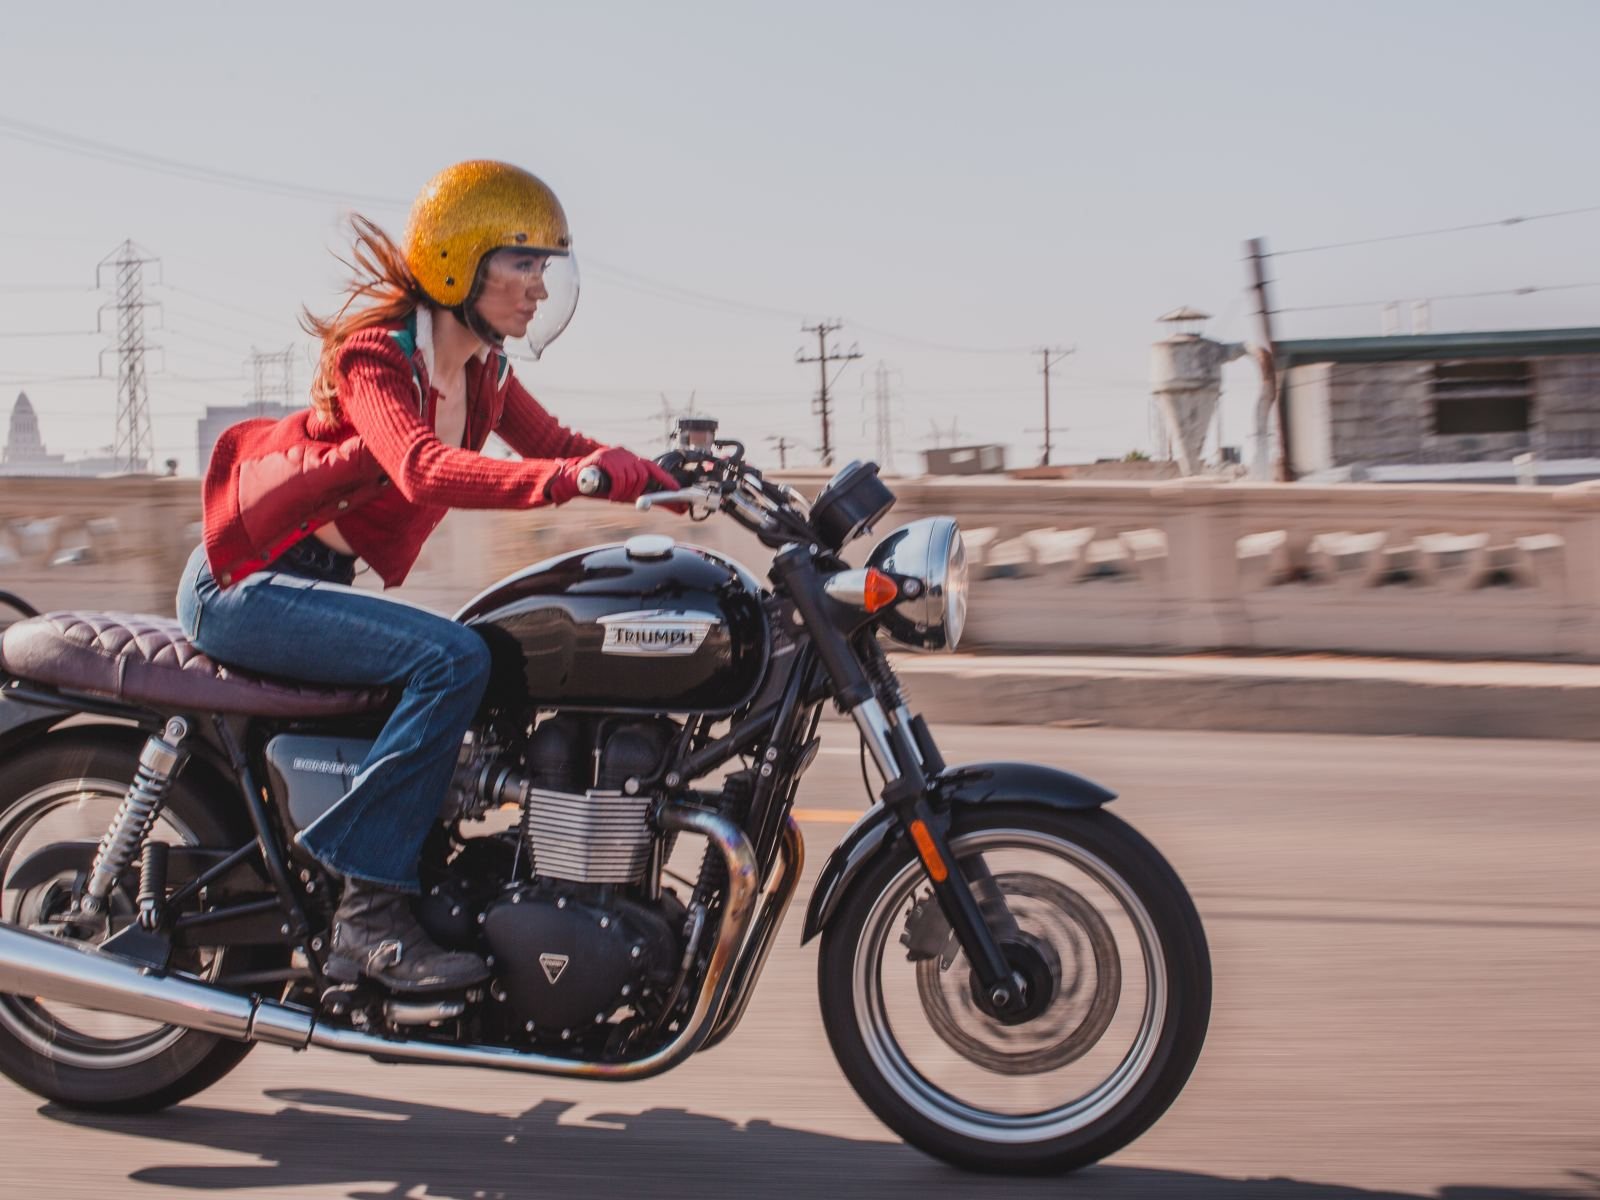 424bf3e6e Top 10 Motorcycle Rides in Los Angeles